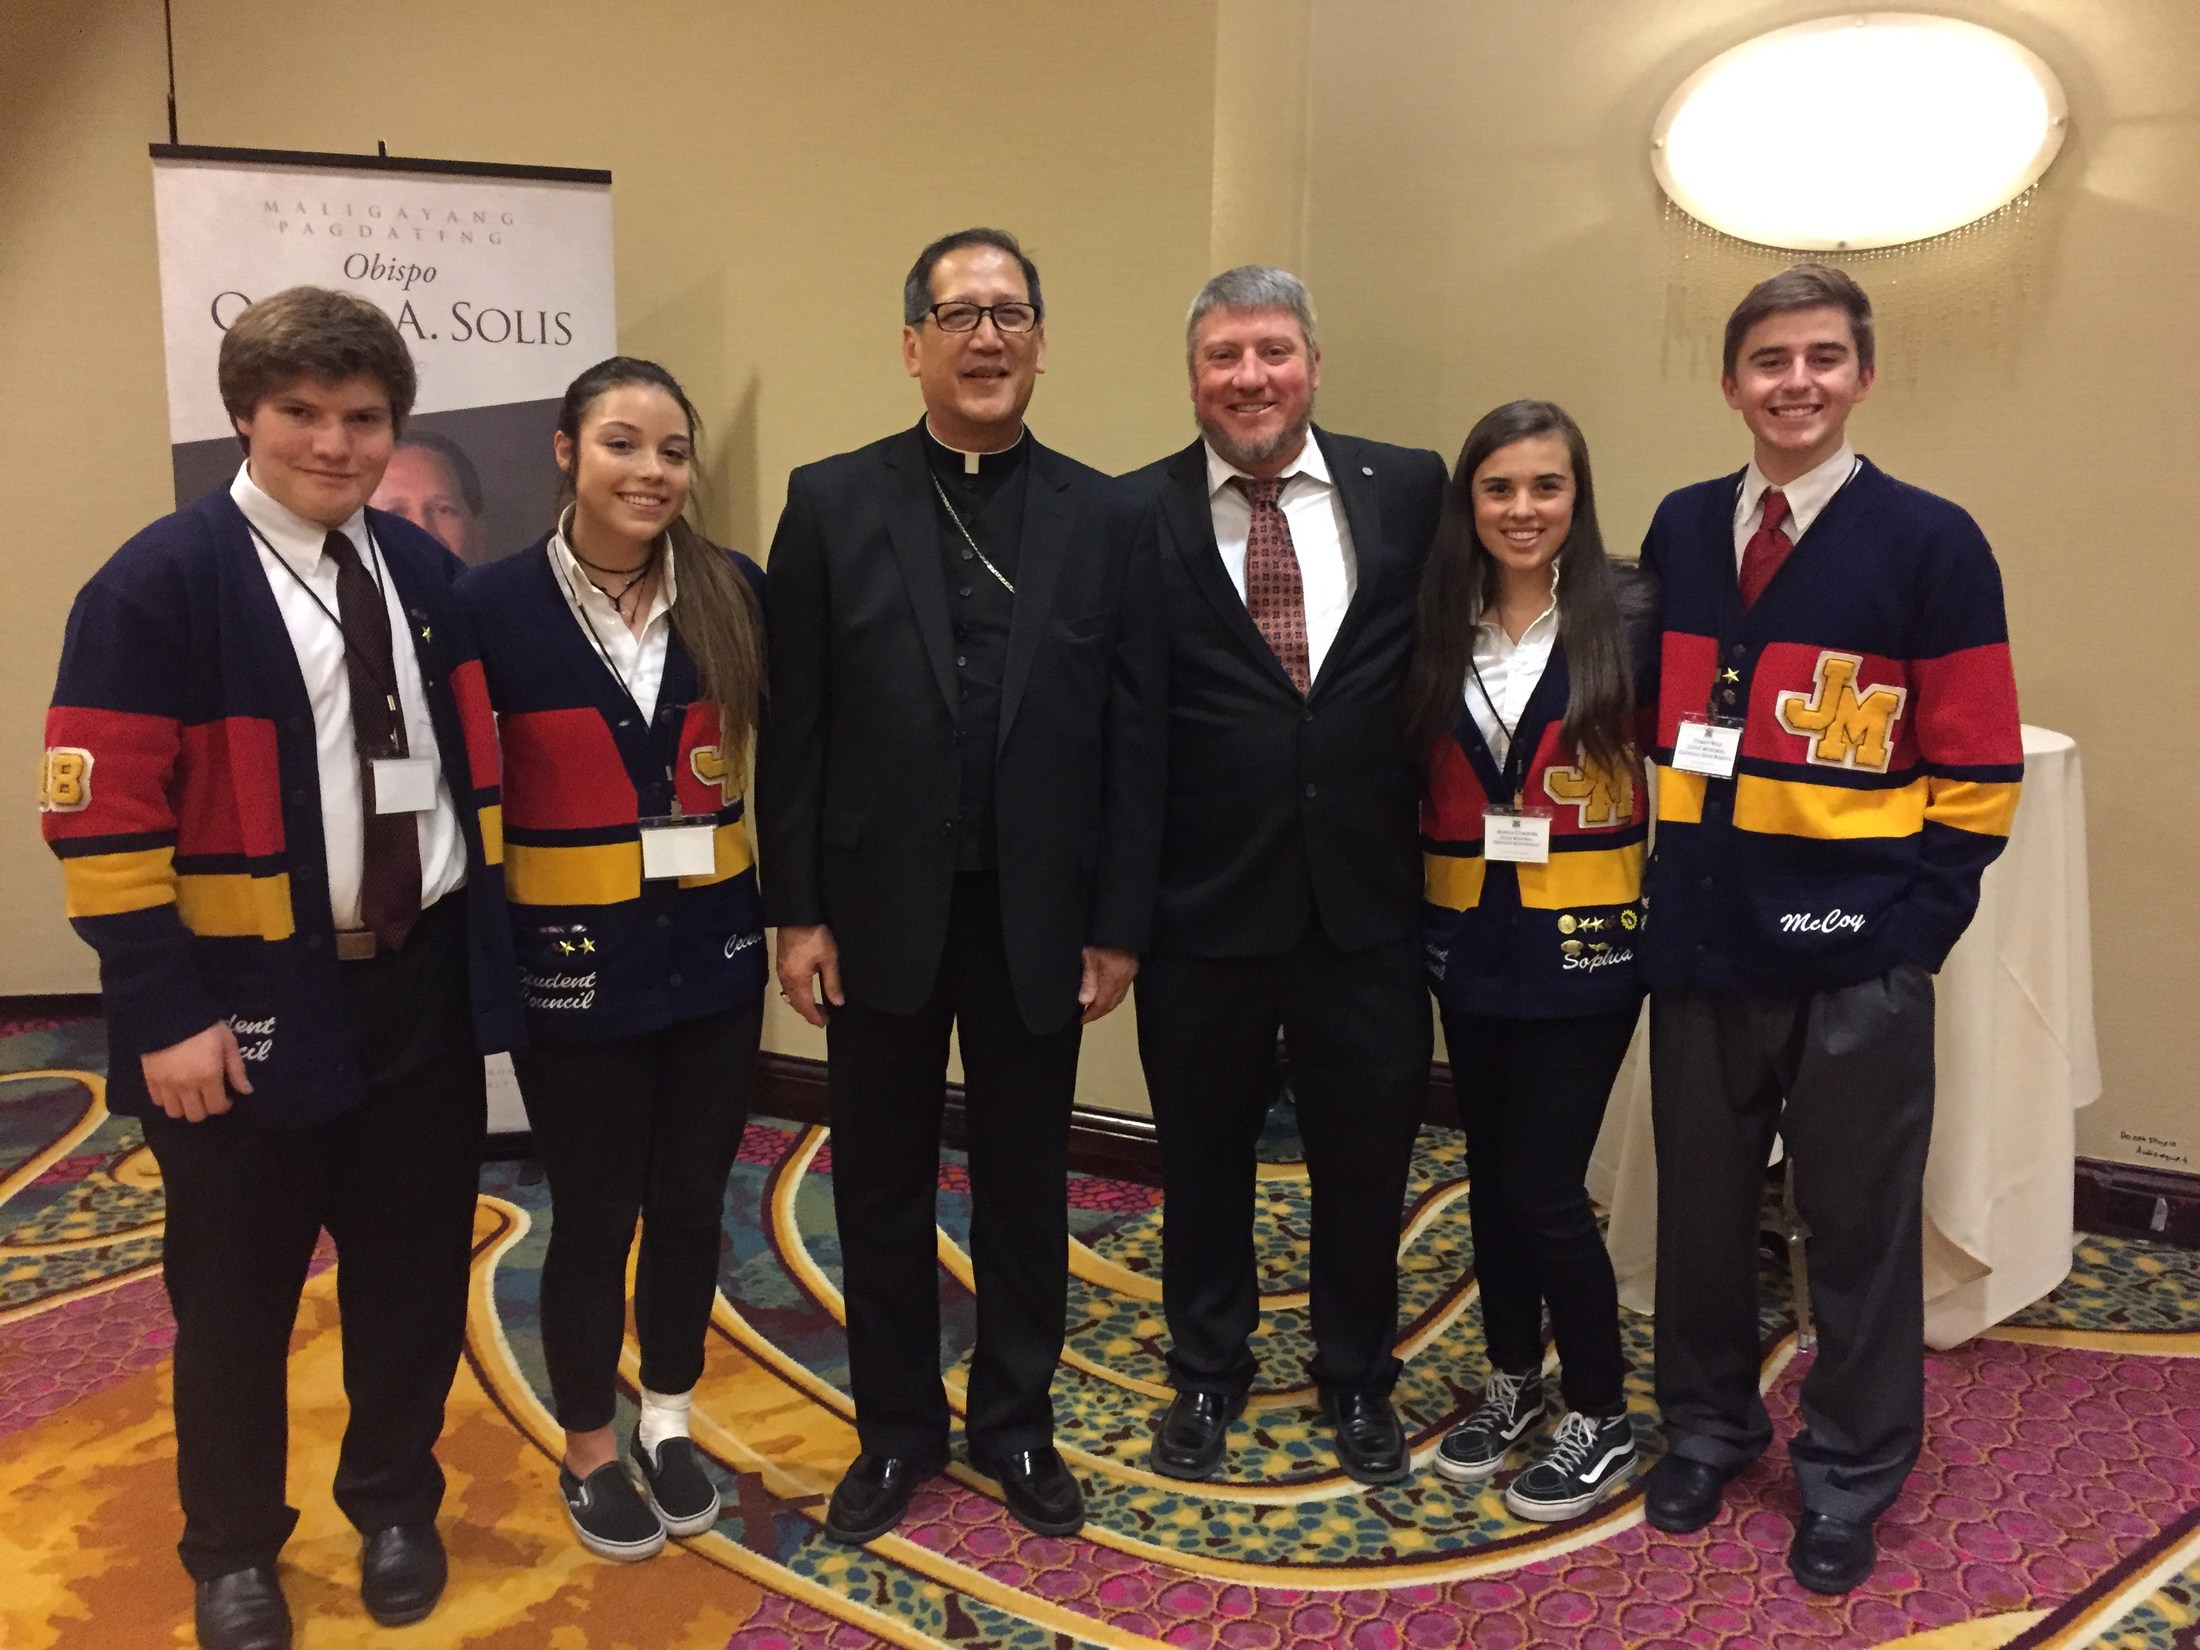 Judge Student Council with The Most Reverend Oscar A. Solis, D. D. Tenth Bishop of Salt Lake City